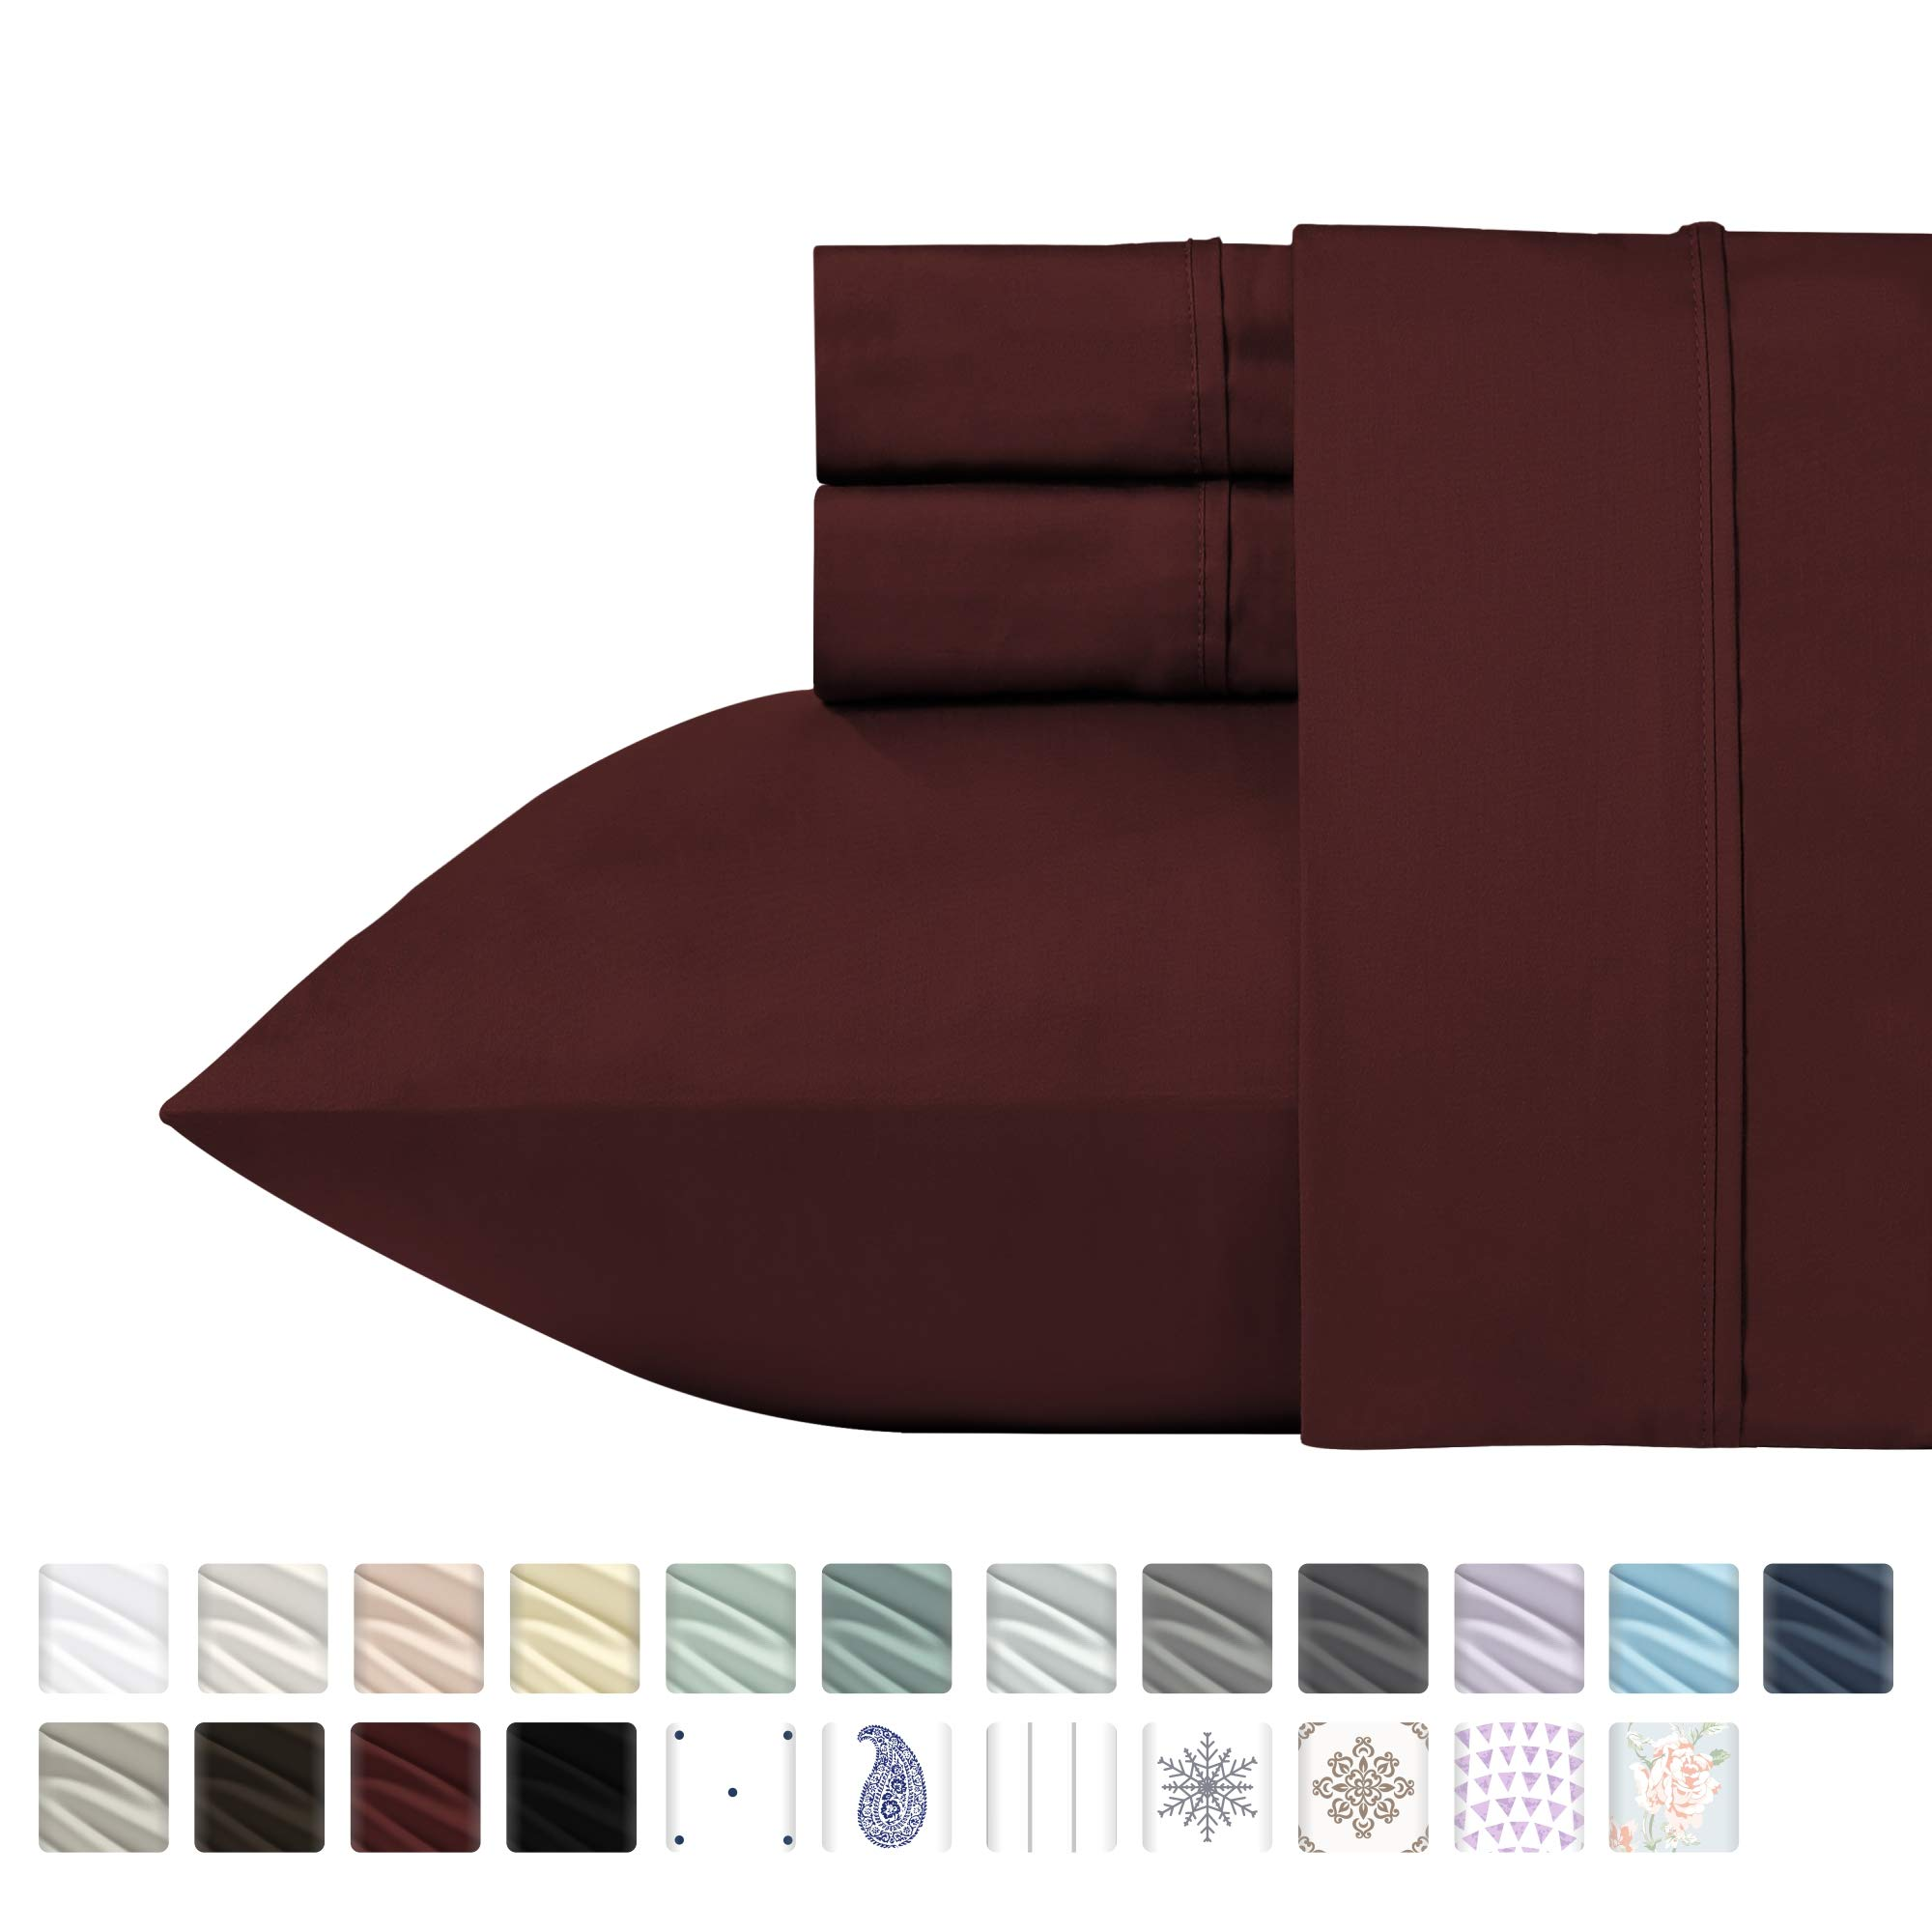 400 Thread Count 100% Cotton Sheet Set, Red Wine Queen Size Sheets, Highest Quality Long-staple Combed Pure Natural Cotton Bed Sheets For Bed, Soft Sateen Sheets Fits Mattress Upto 18'' Deep Pocket by California Design Den